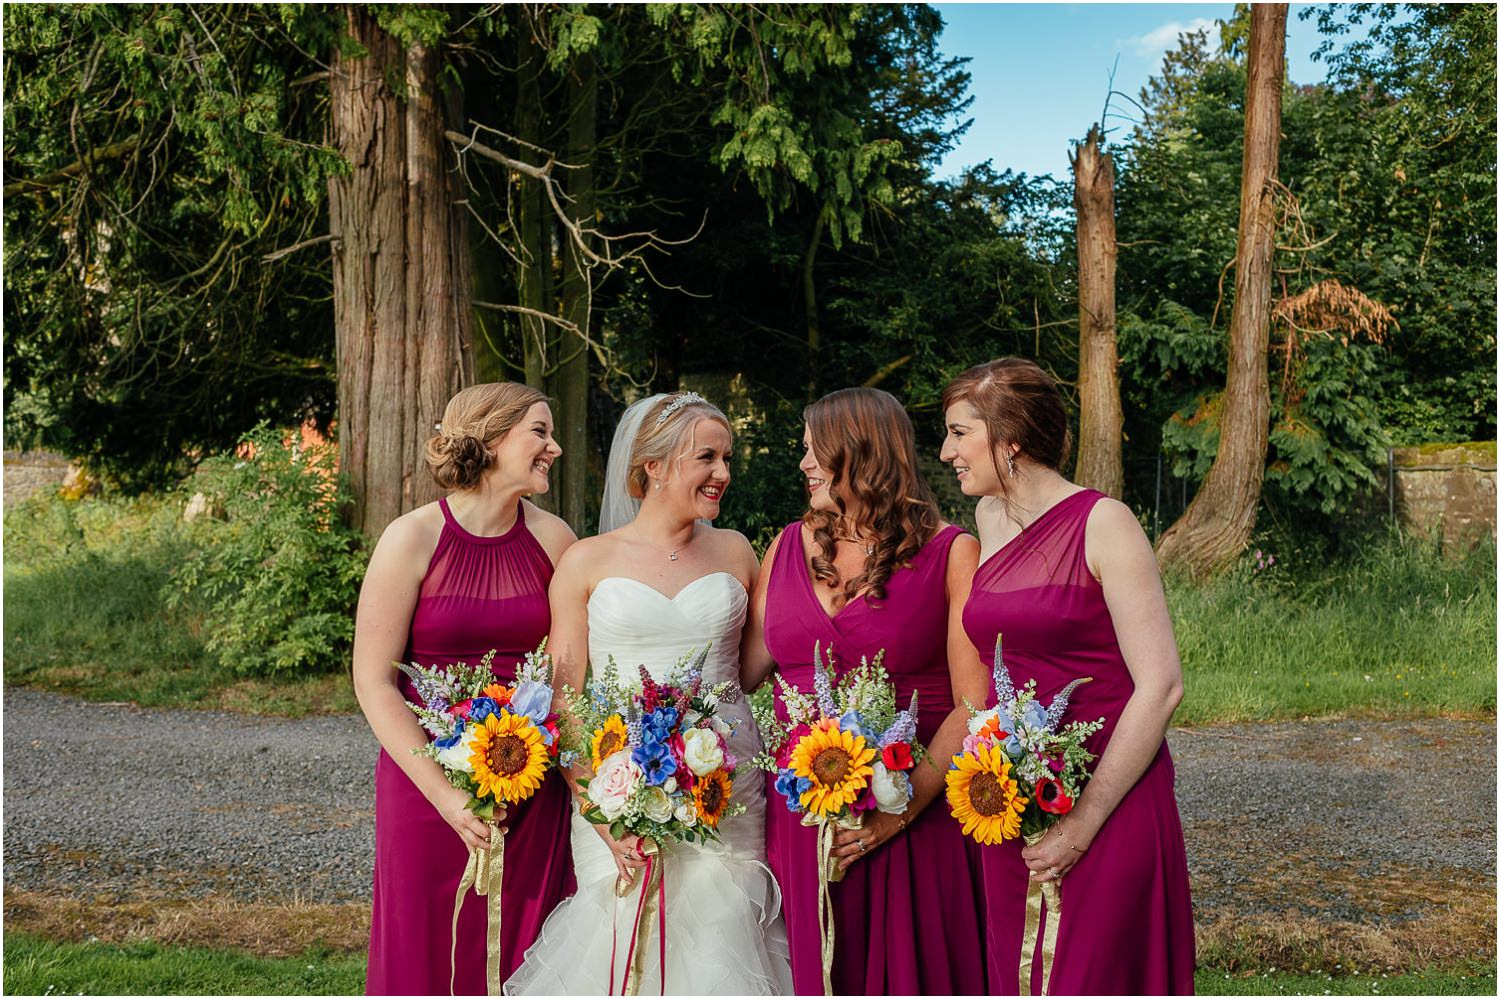 Cornhill Castle Wedding Happy Laughing Bride Bridesmaids Purple Dresses Photo Chinese Scottish Wedding